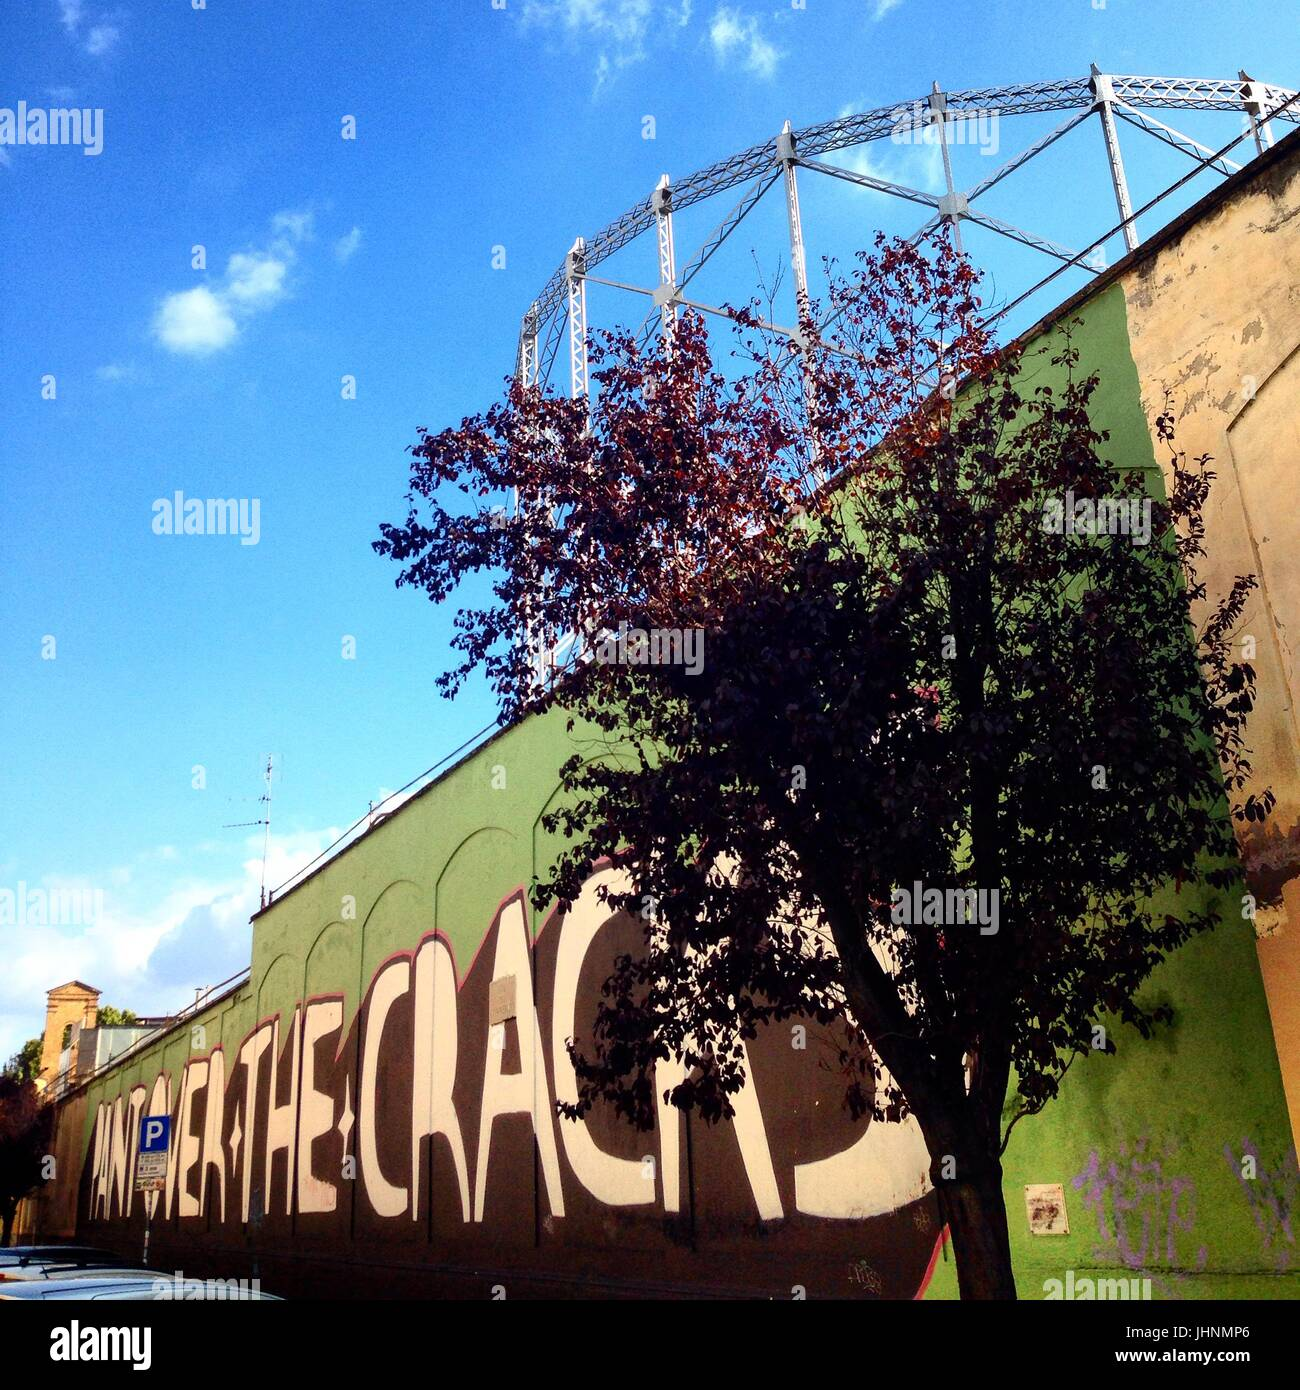 Street art and Gazometro, Ostiense quarter, Rome, Italy    Credit © Anna Retico/Sintesi/Alamy Stock Photo *** - Stock Image